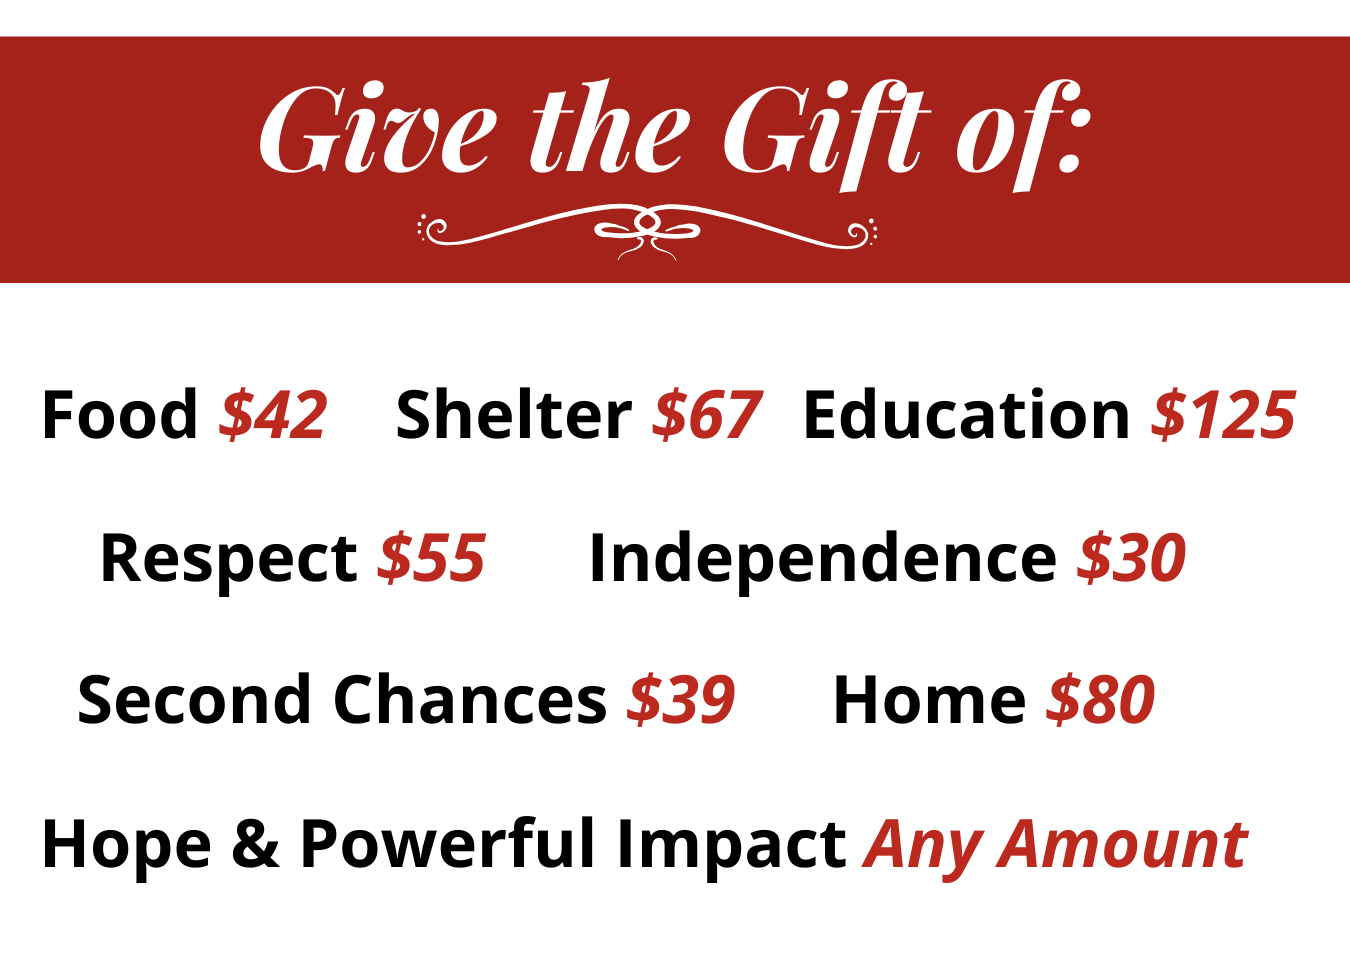 Gift of Shelter $67, Food $42, Respect $55, Second Chances $